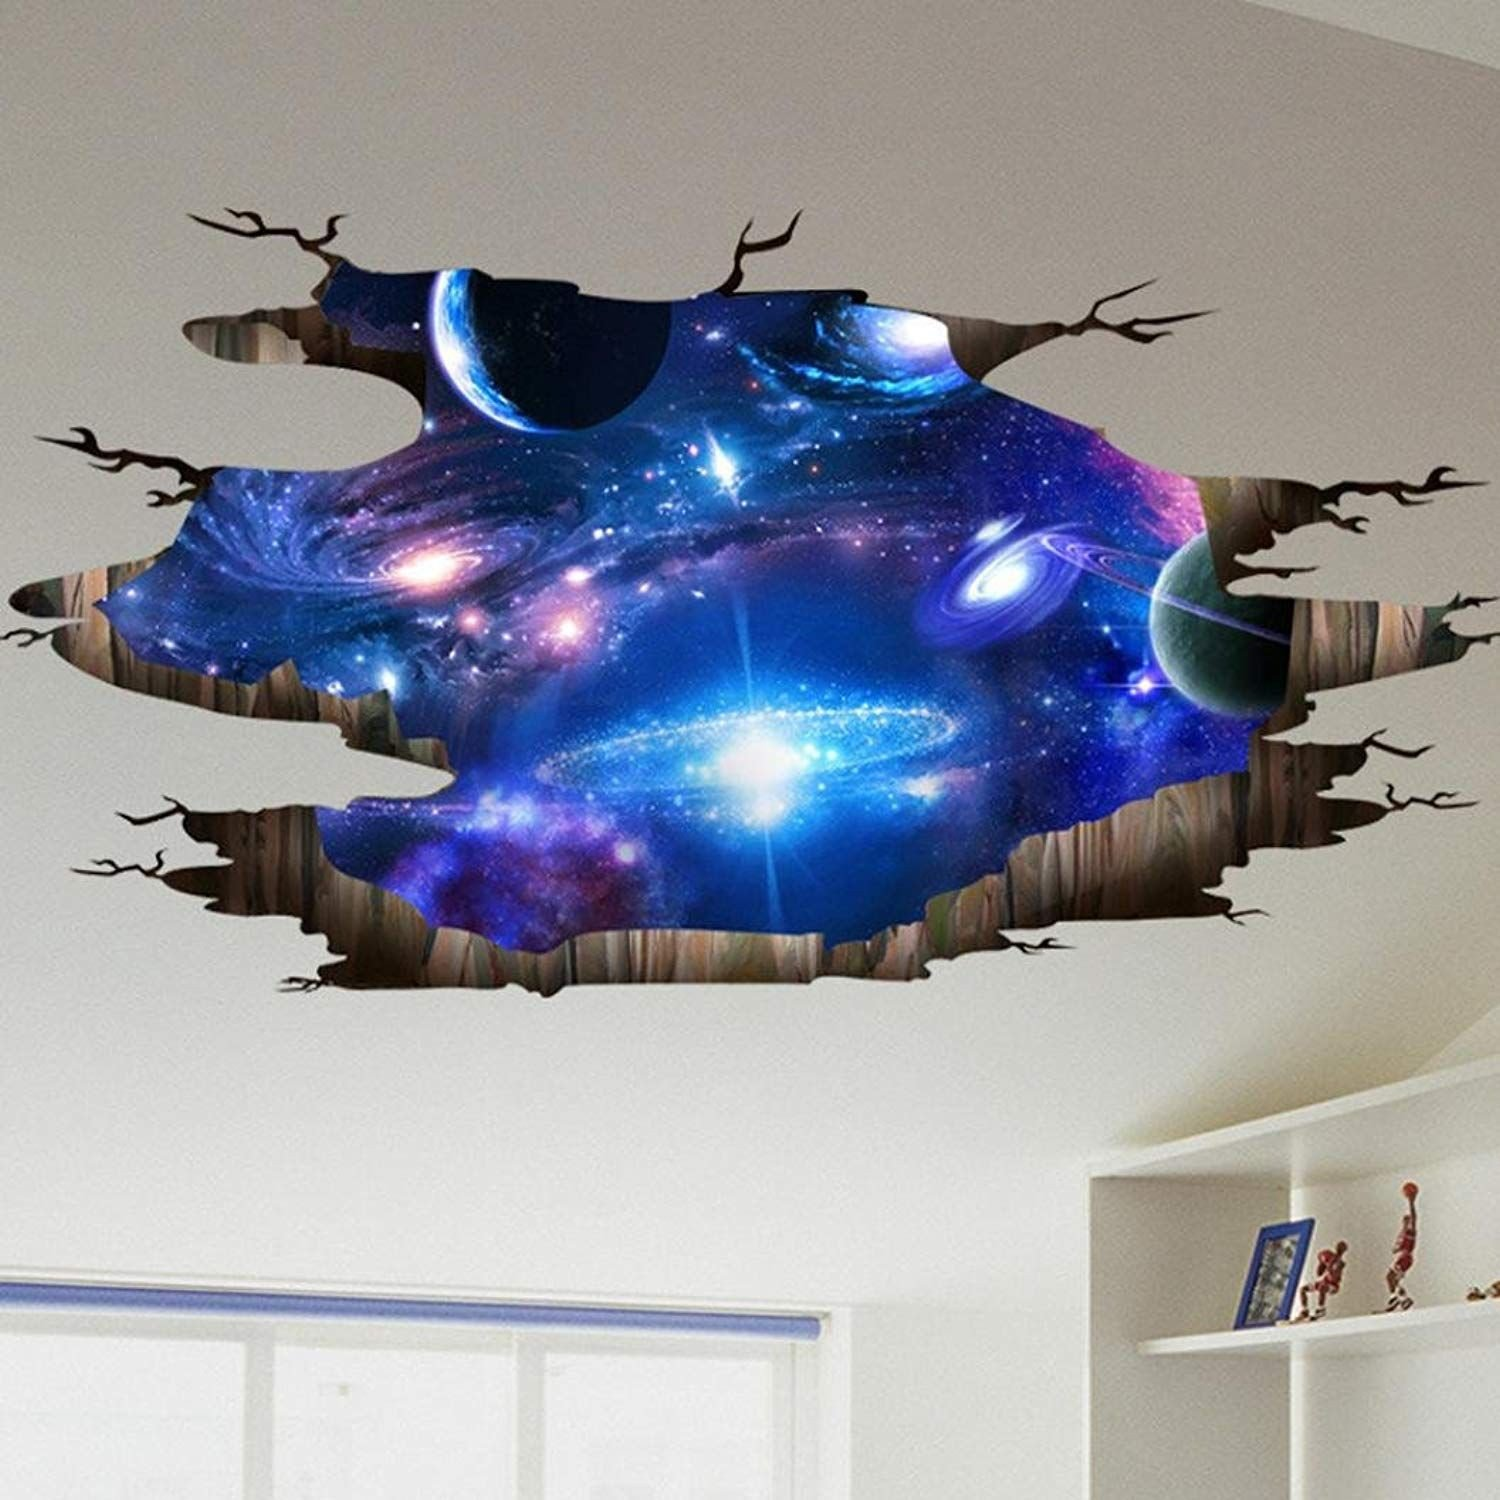 Galaxy Wallpaper for Bedroom Beautiful Amazonsmile Lowprofile 3d Bridge Floor Wall Sticker